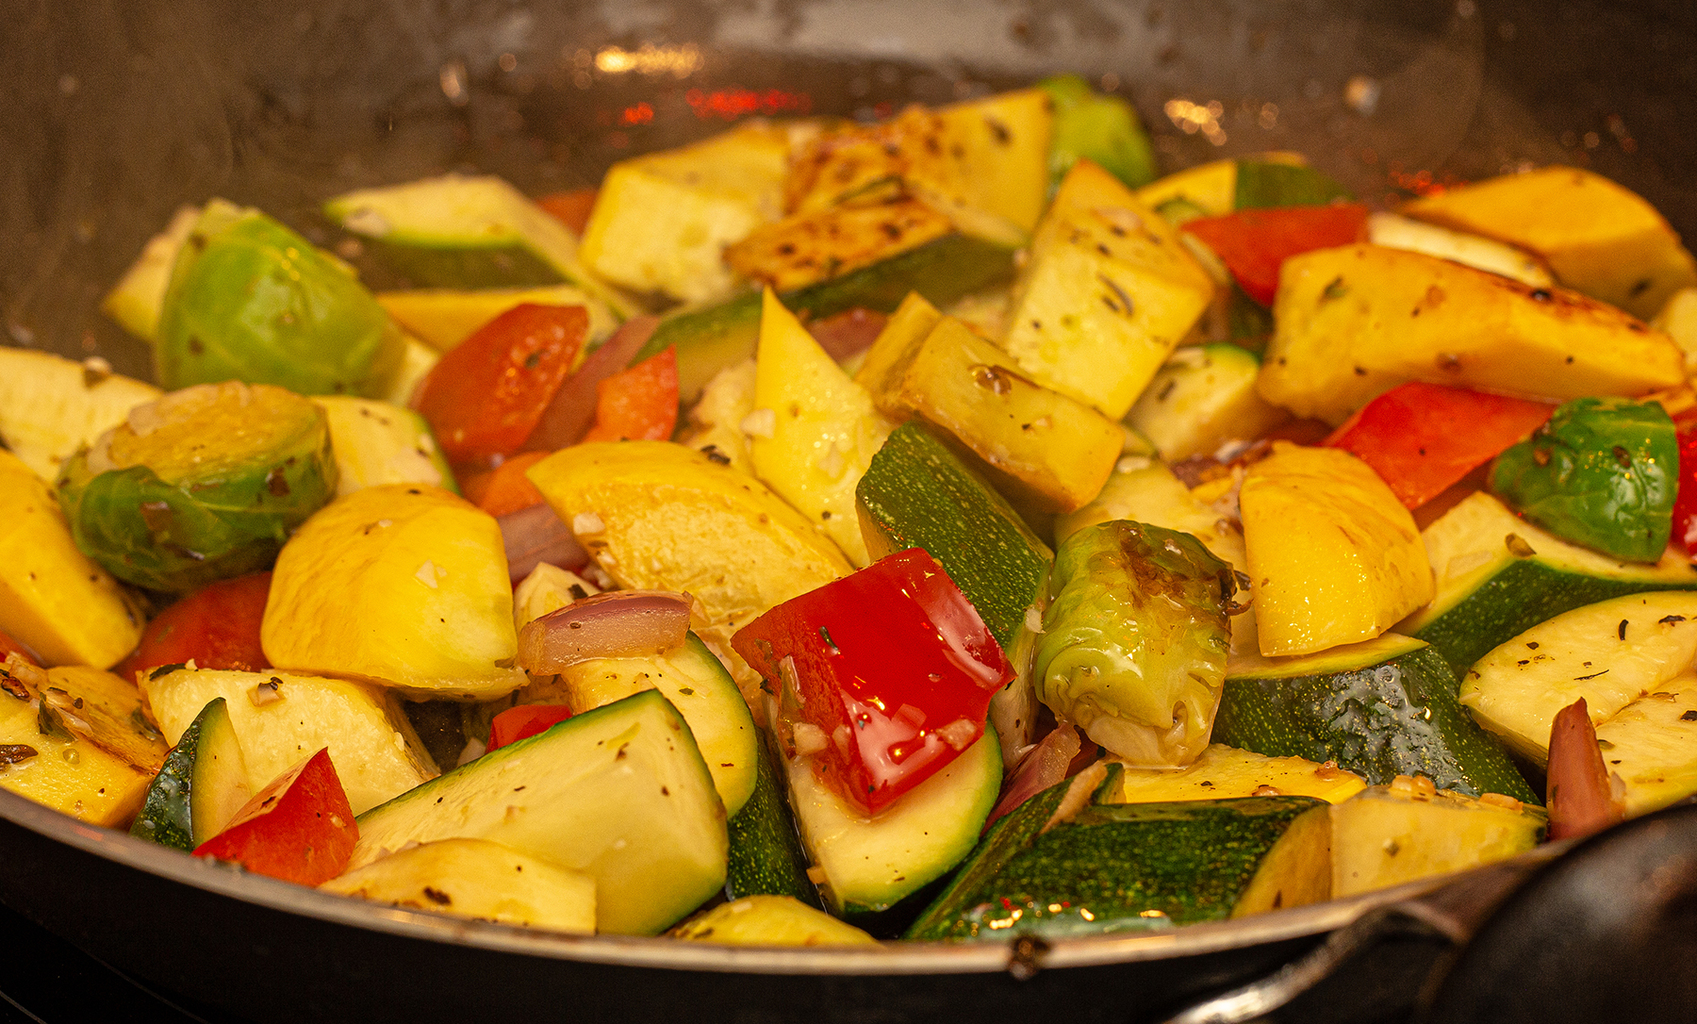 Squash & Peppers Prep